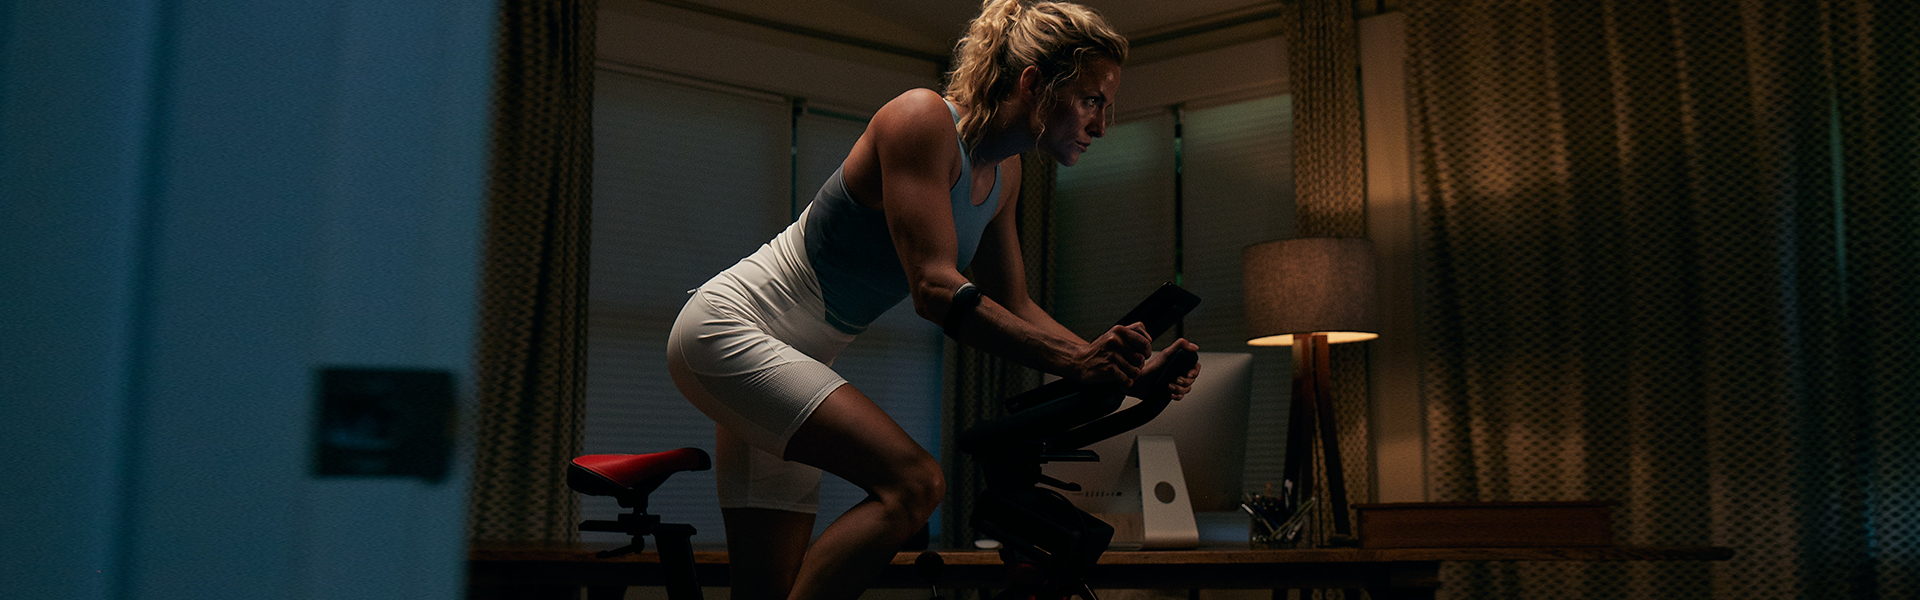 A fit woman using the C6 bike in her home.